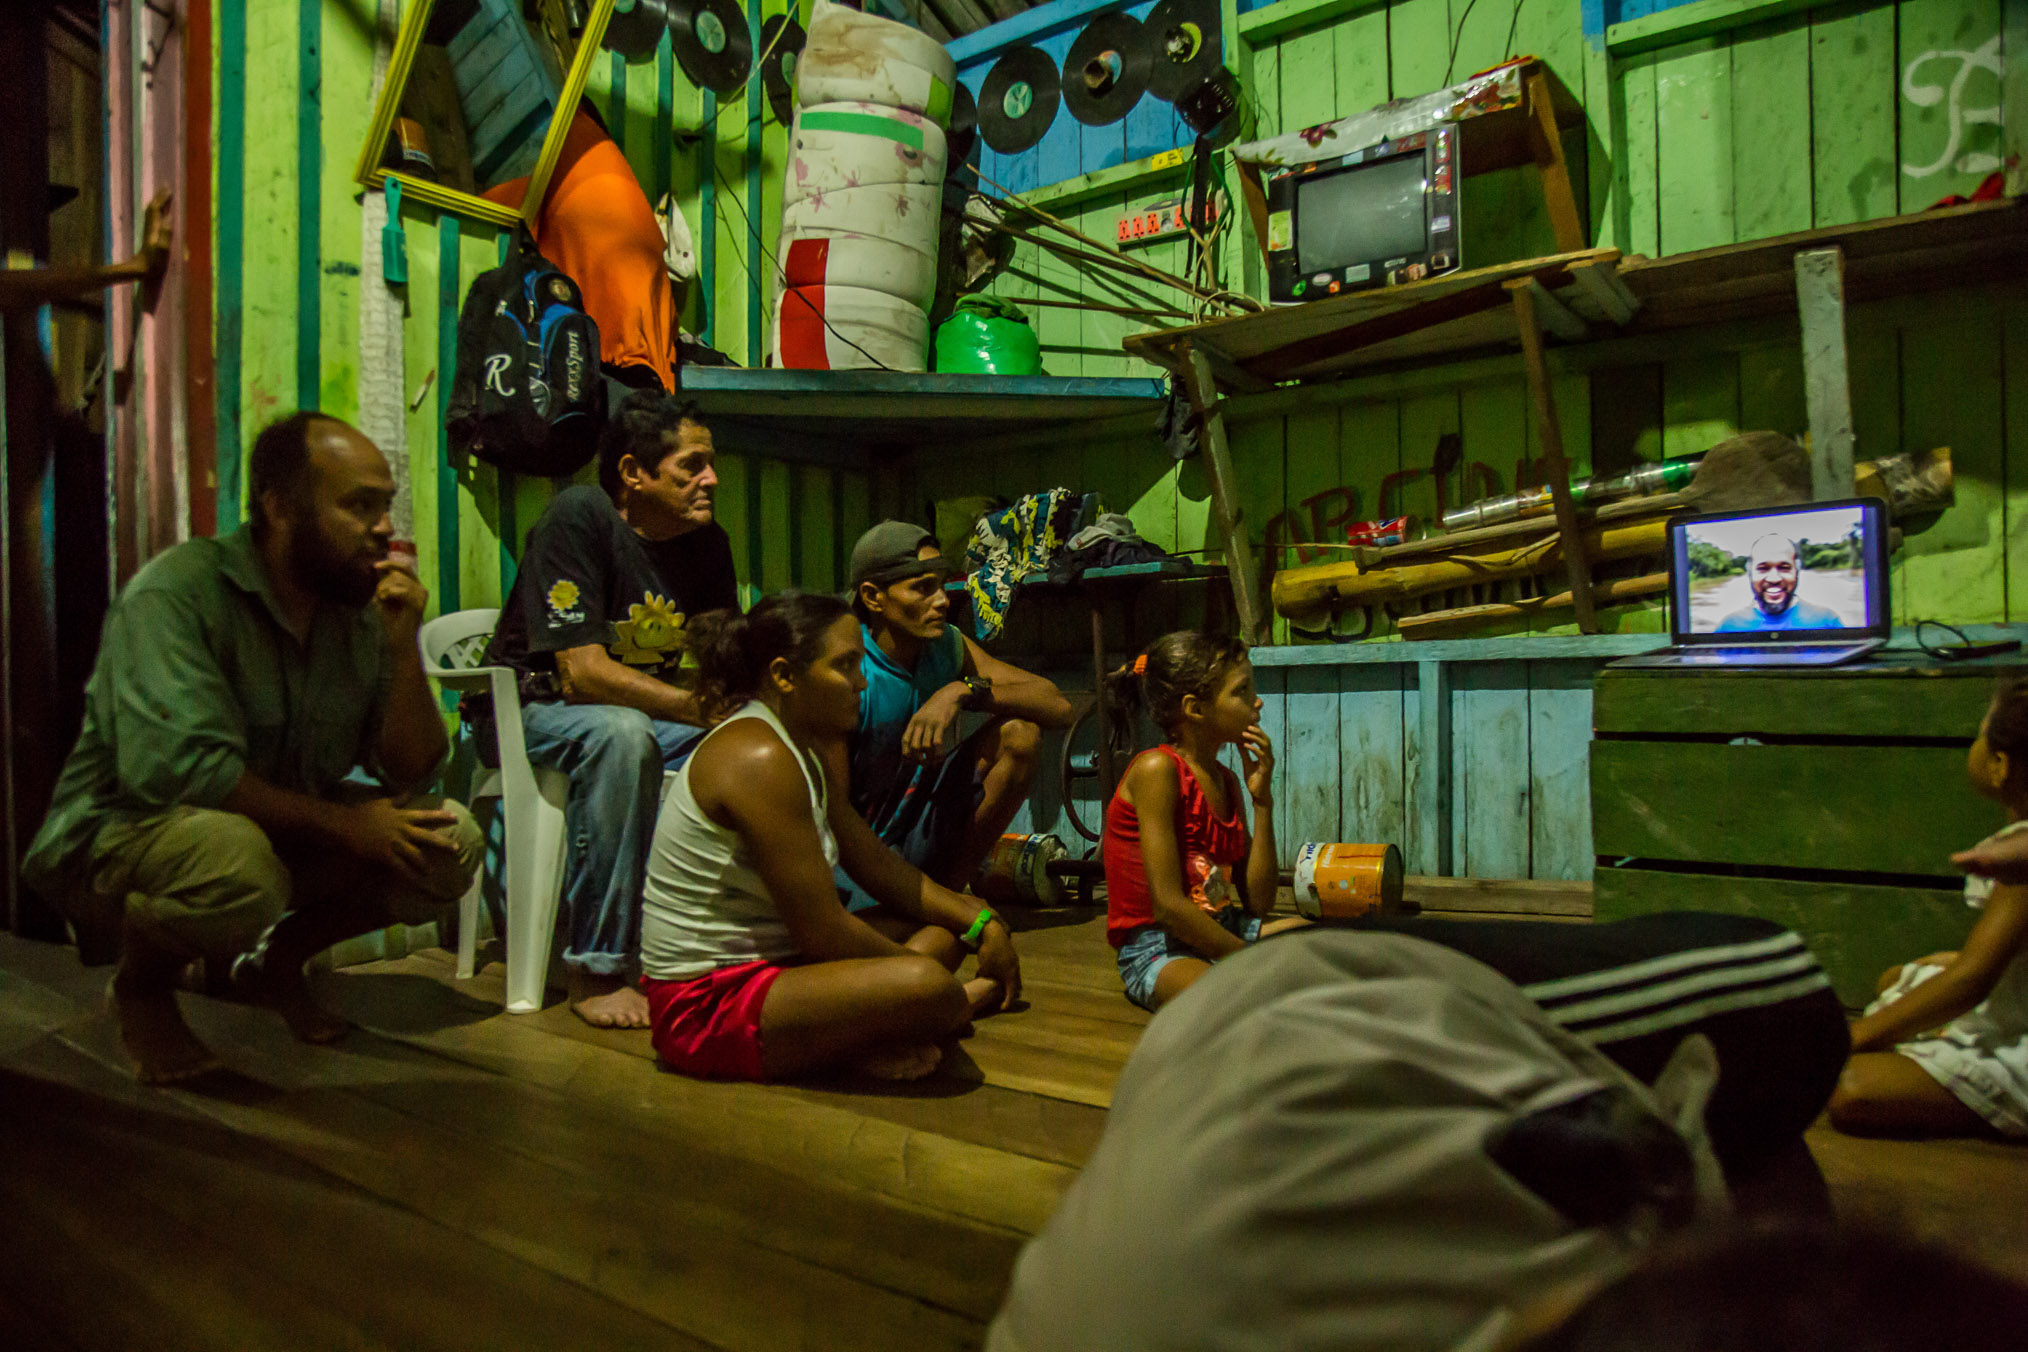 In each community, the scientists show a video with photos and drone footage from the ongoing expedition to help educate locals about their work in the surrounding forest.